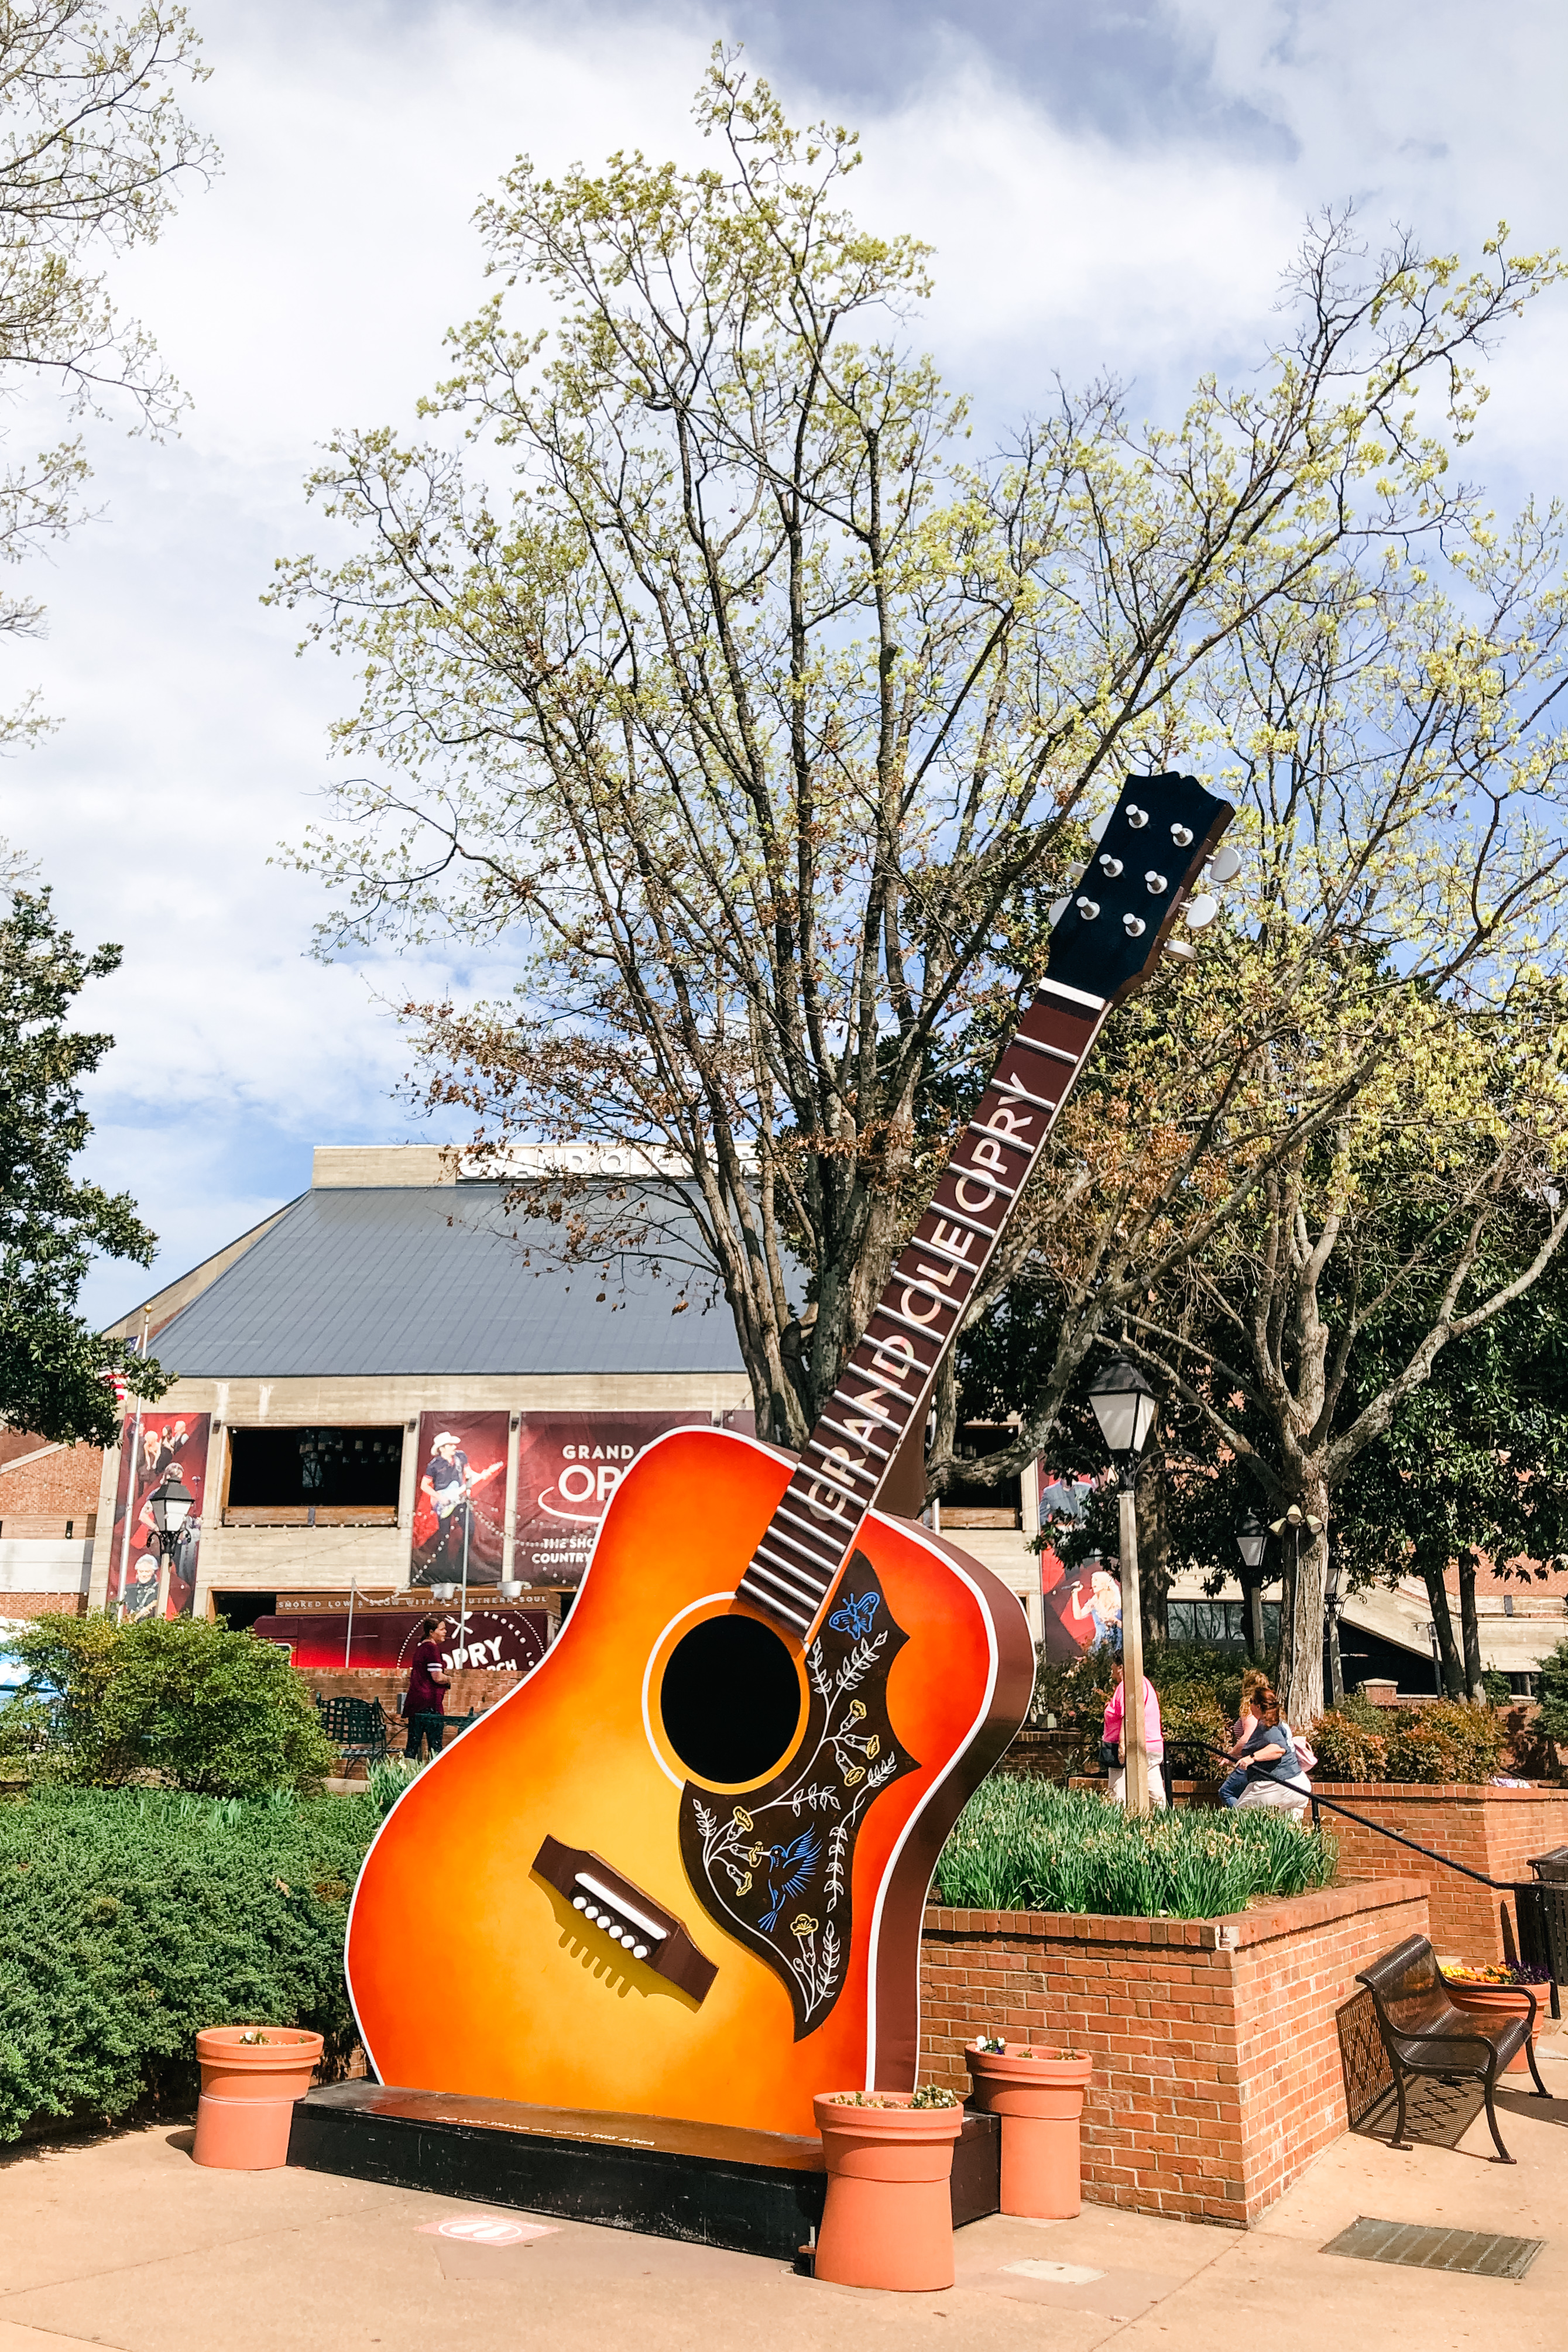 Grand Ole Opry in Nashville, TN